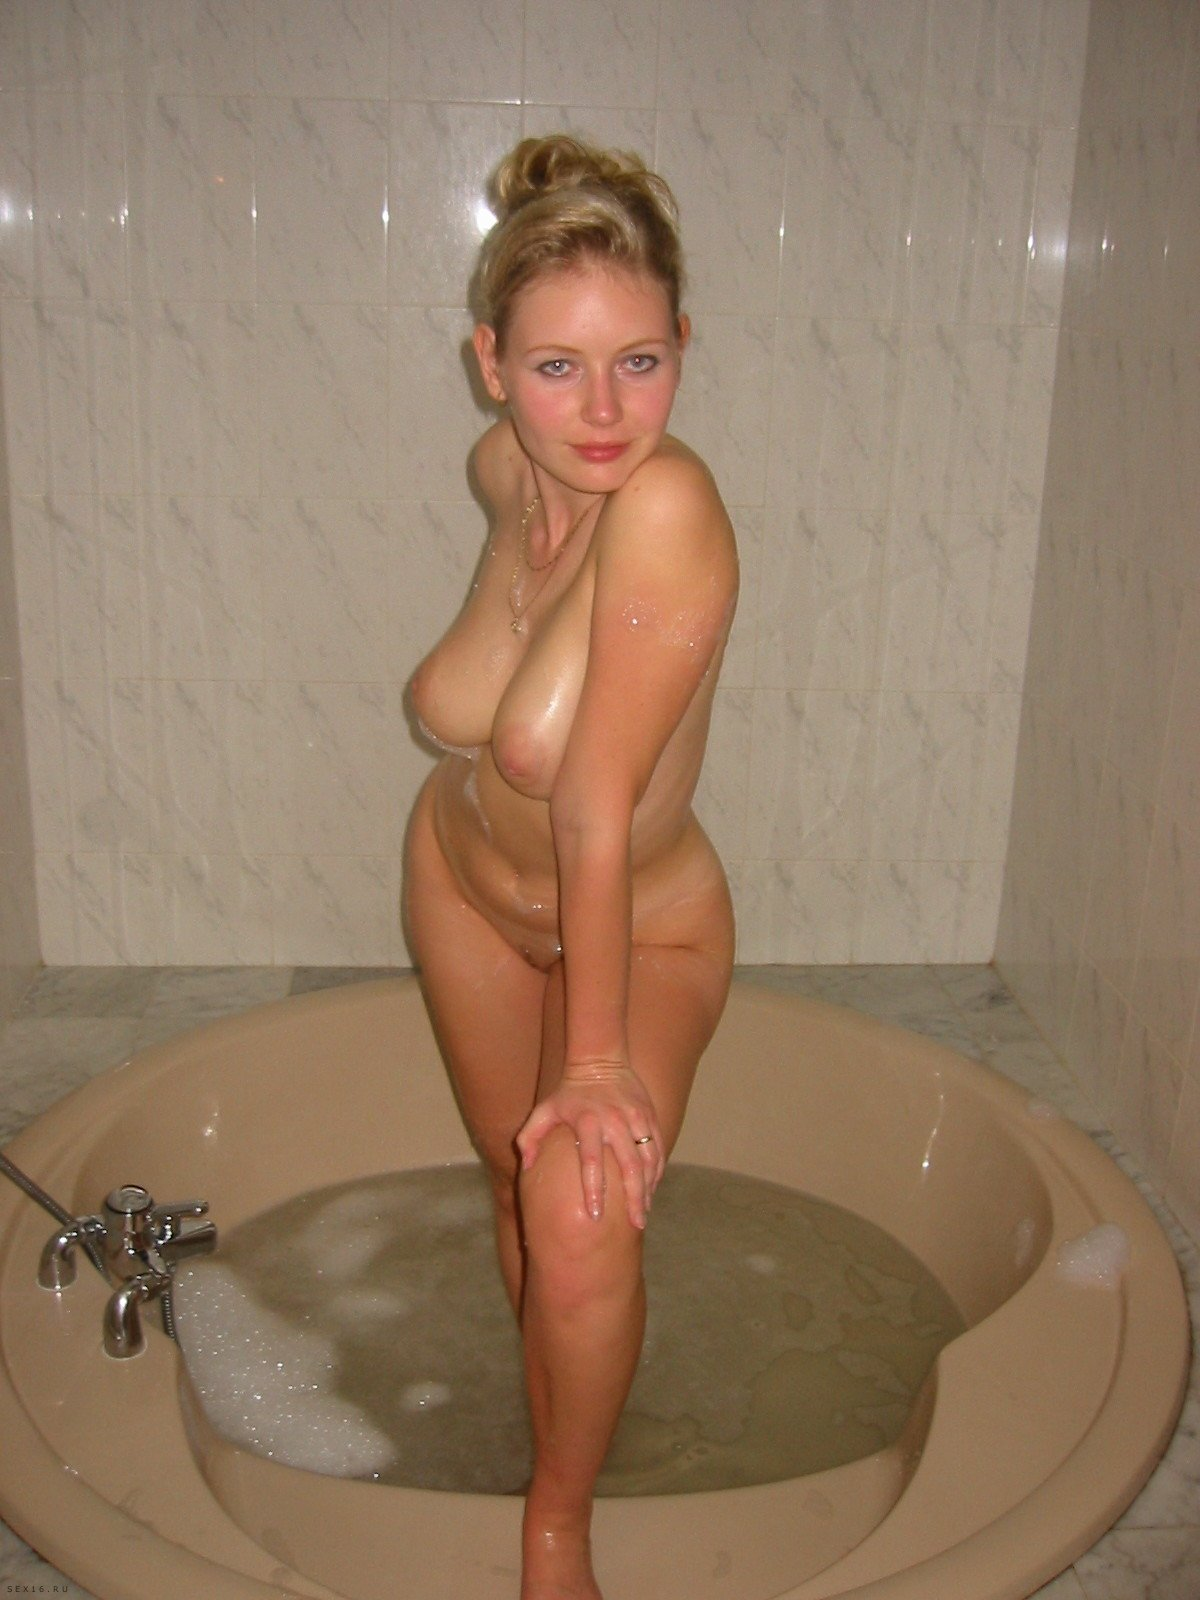 Consider, Amateur mature nude blondes opinion